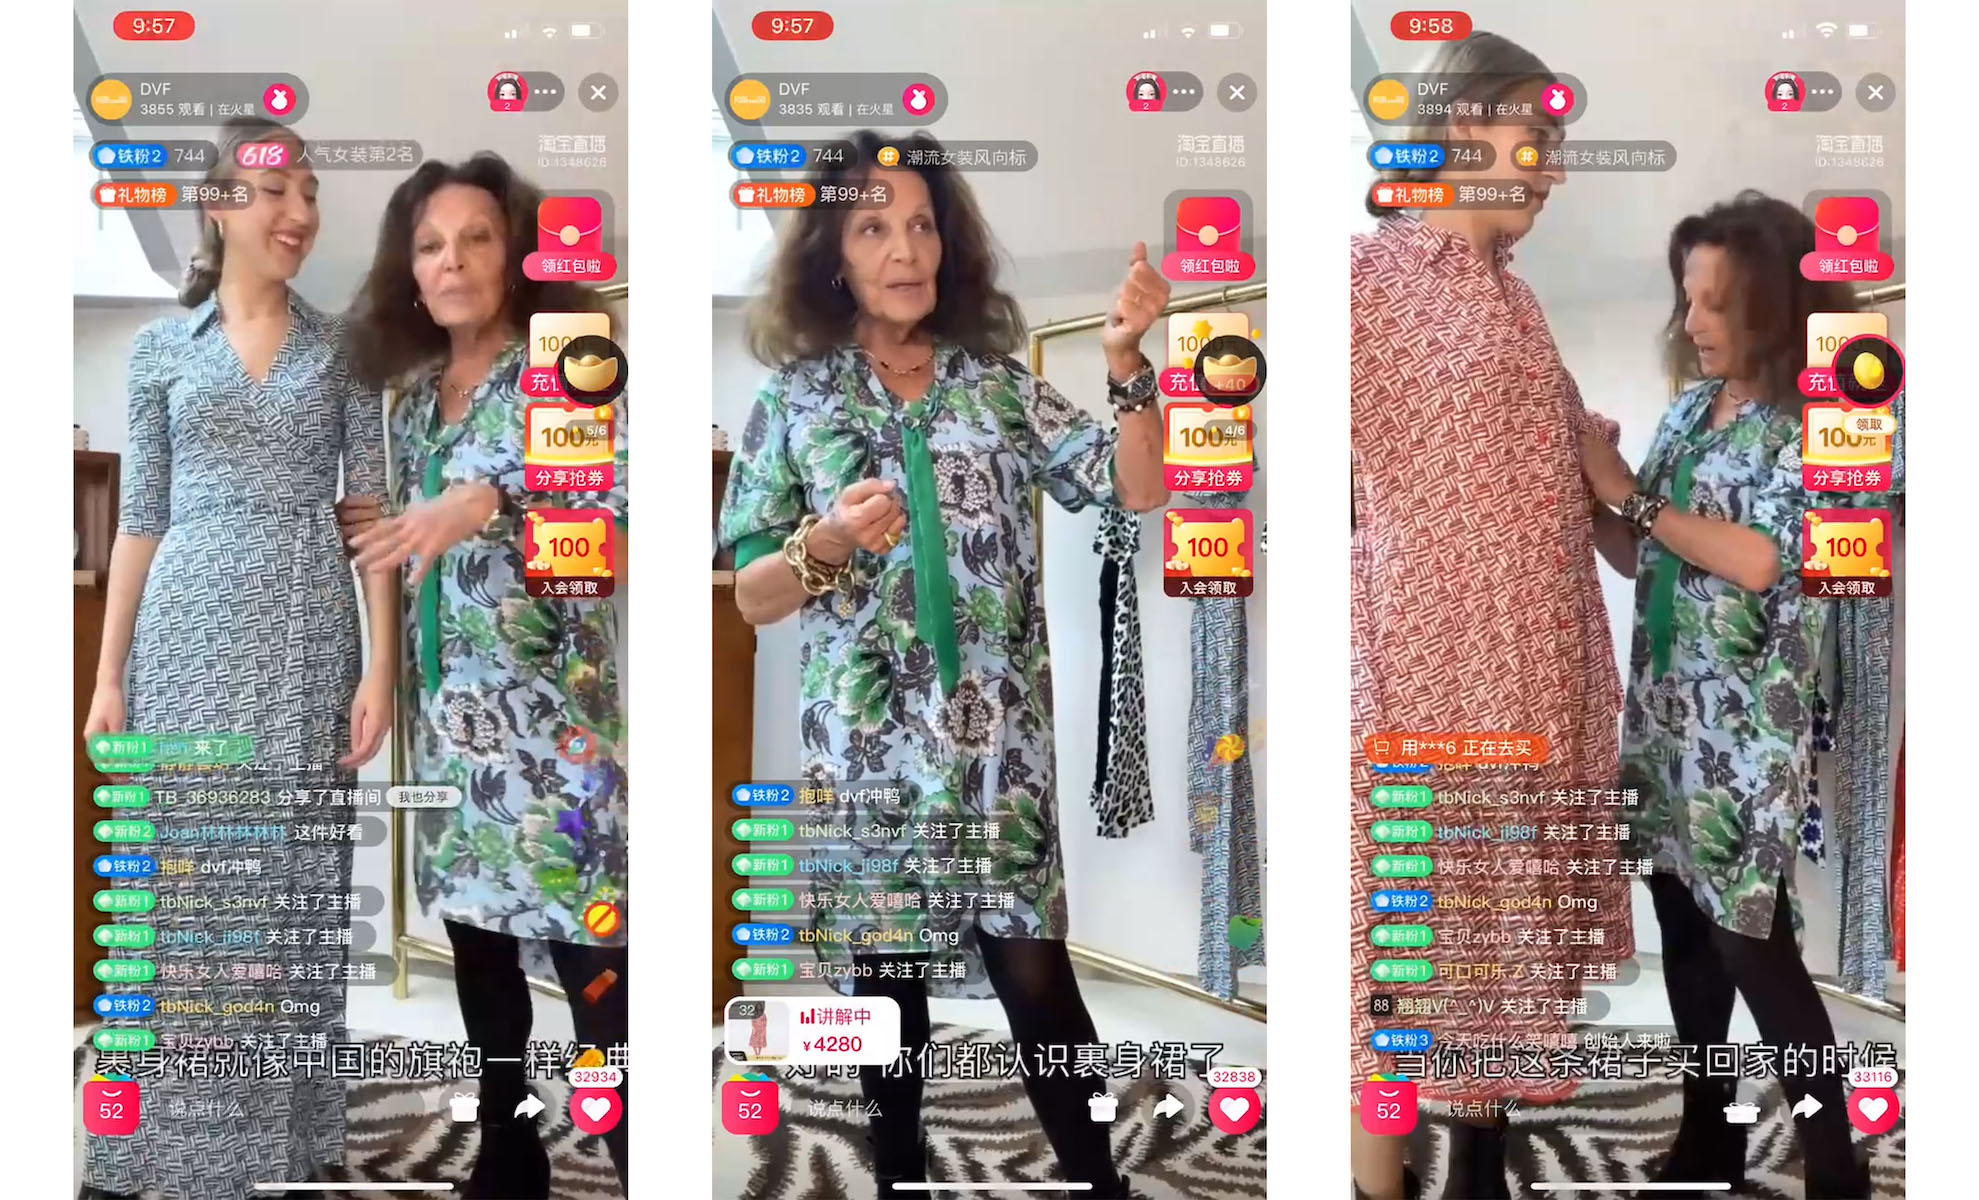 Diane von Furstenberg interacts with Chinese shoppers during 6.18 Mid-year Shopping Festival through livestreaming on Tmall.